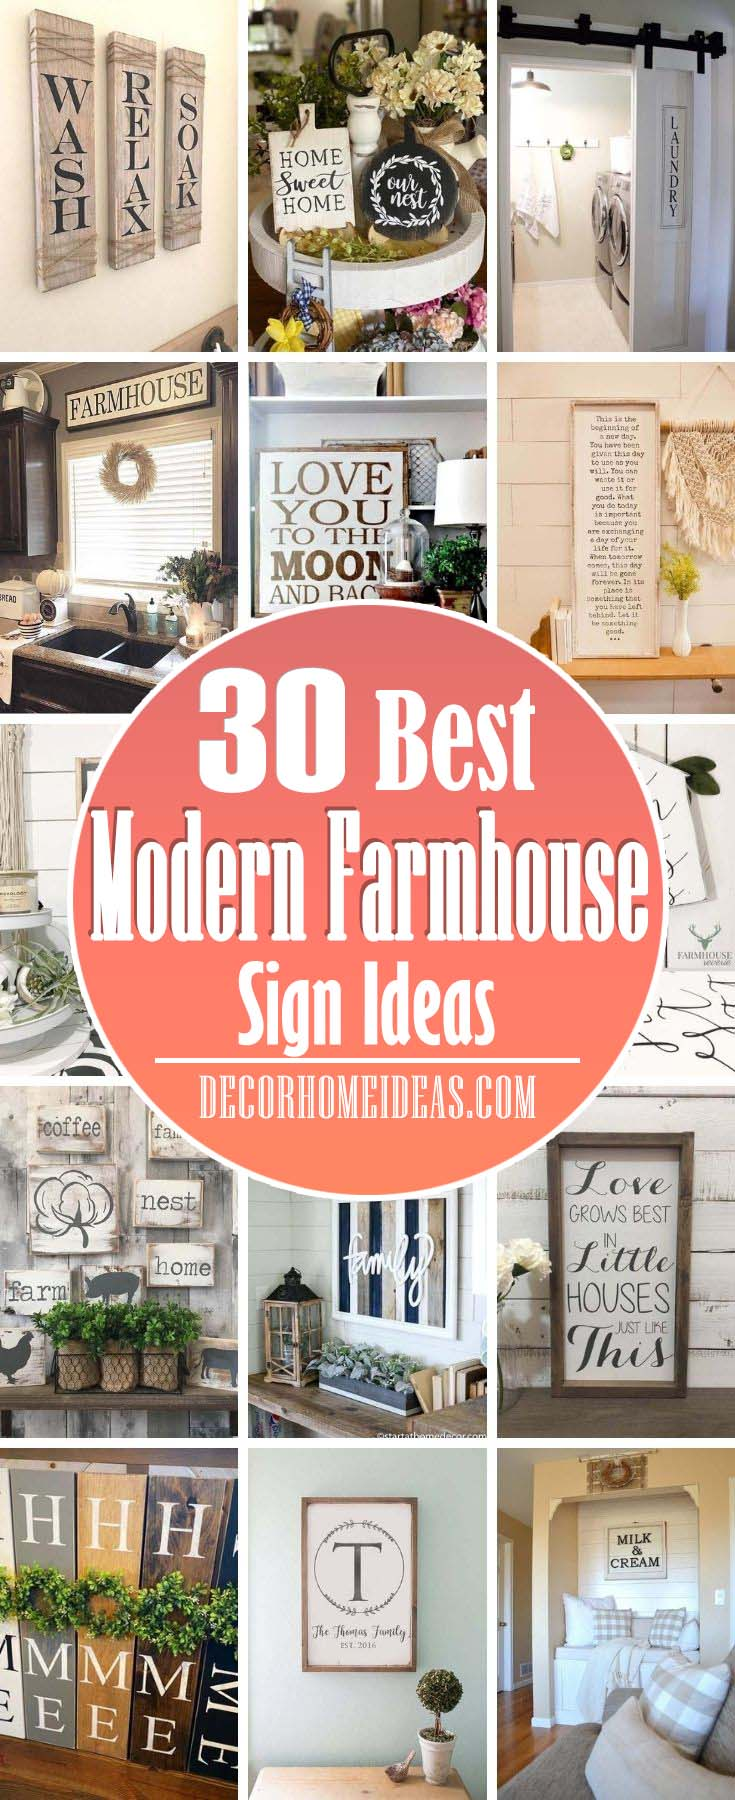 Best Modern Farmhouse Sign Ideas. Modern farmhouse sign ideas that will charm your guests and make your home even more adorable. The best designs are here just for you! #decorhomeideas